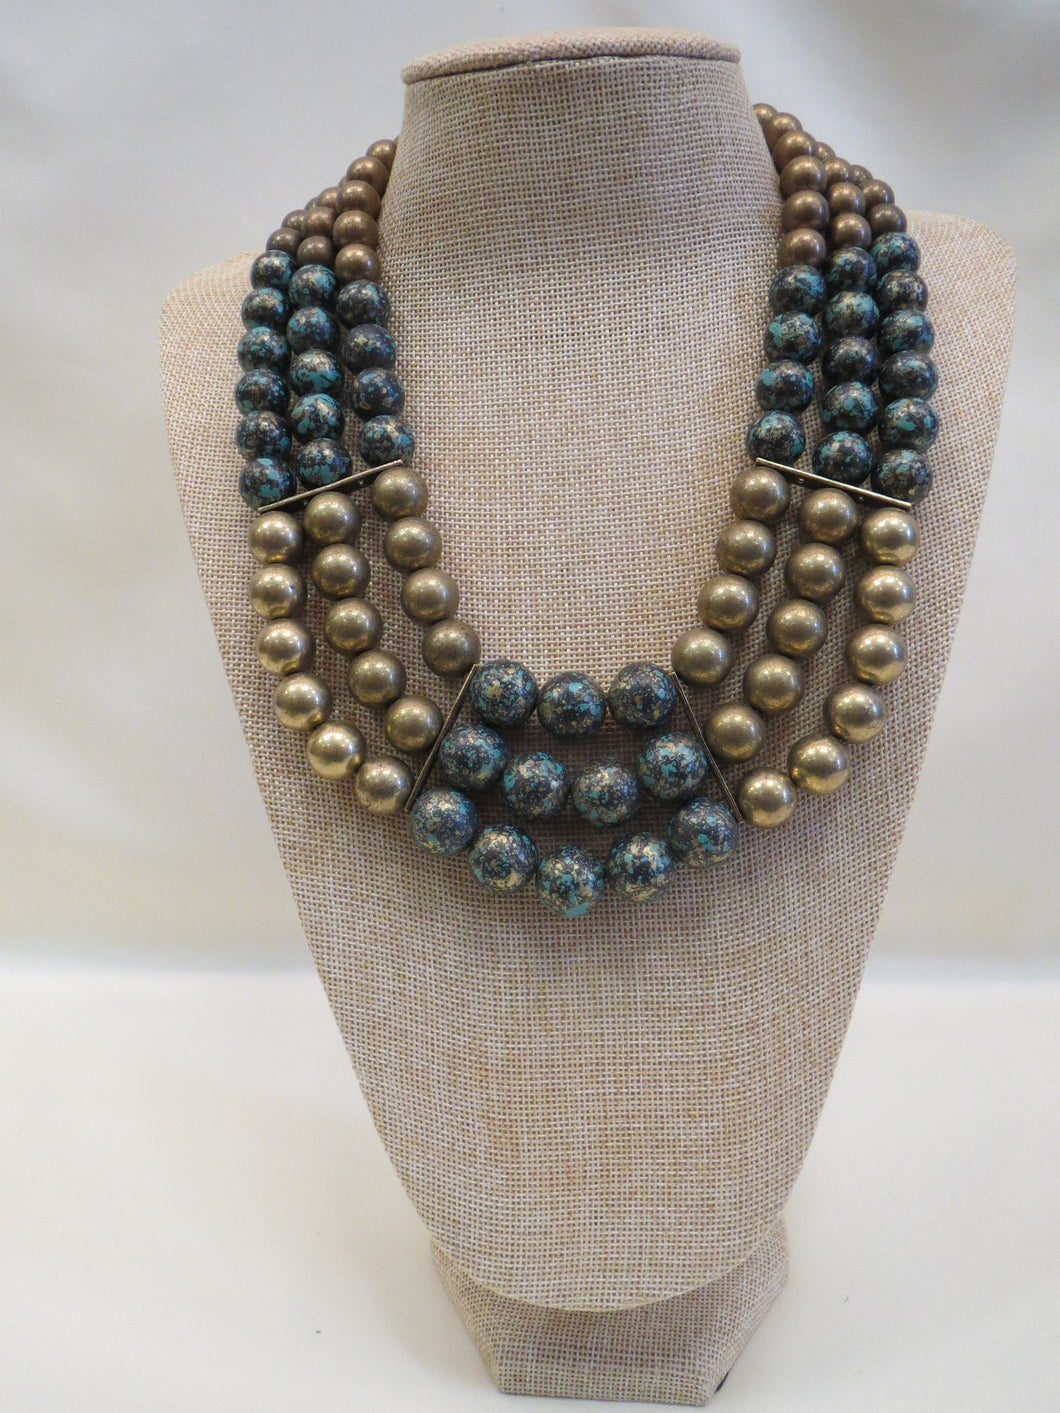 ADO | Gold & Turquoise Bib Necklace - All Decd Out